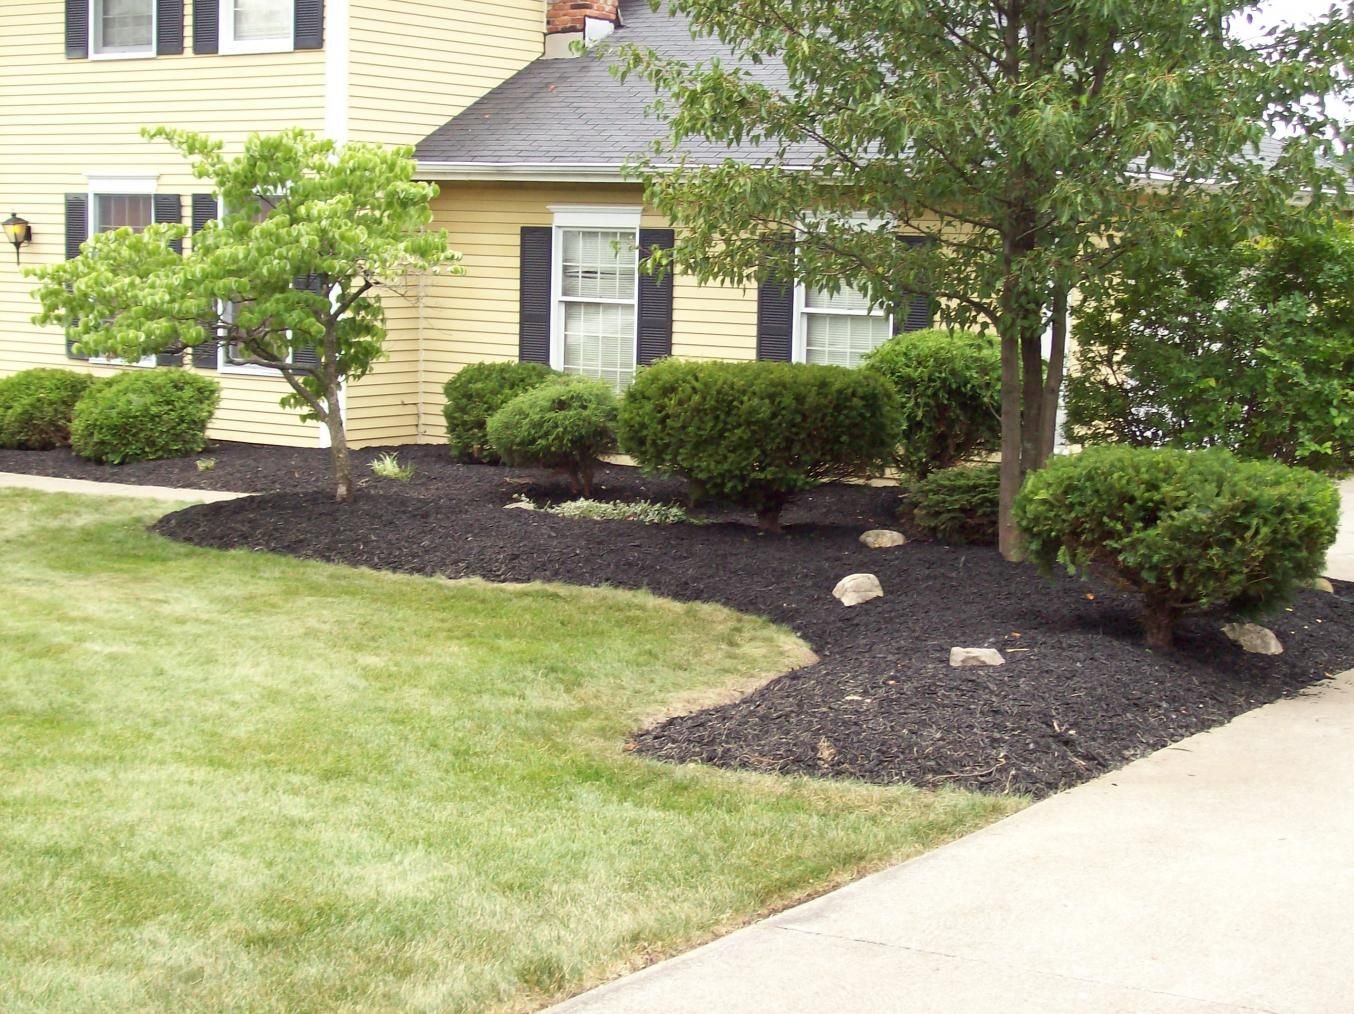 Front Yard Landscape Mulch Bid Example: Pictures Of Landscape ...